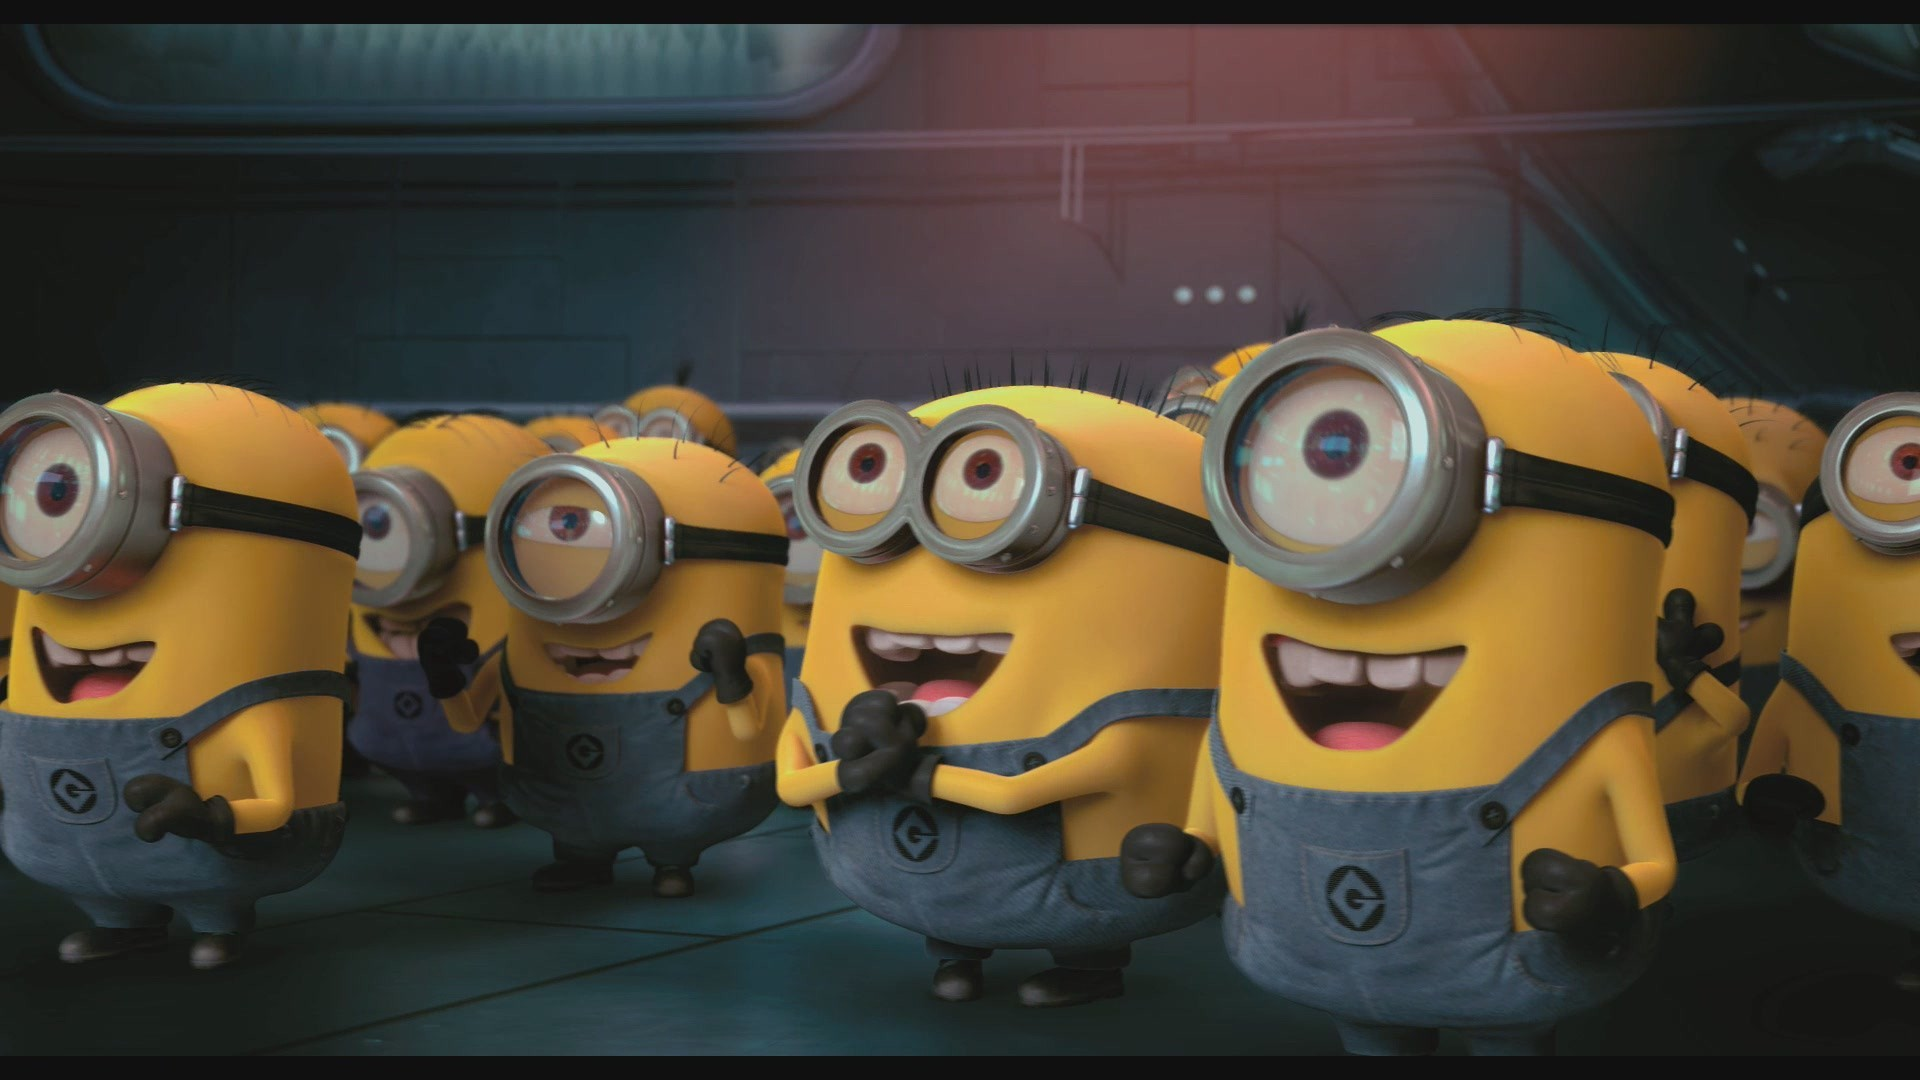 1920x1080 Animation Minions Wallpaper  Animation, Minions